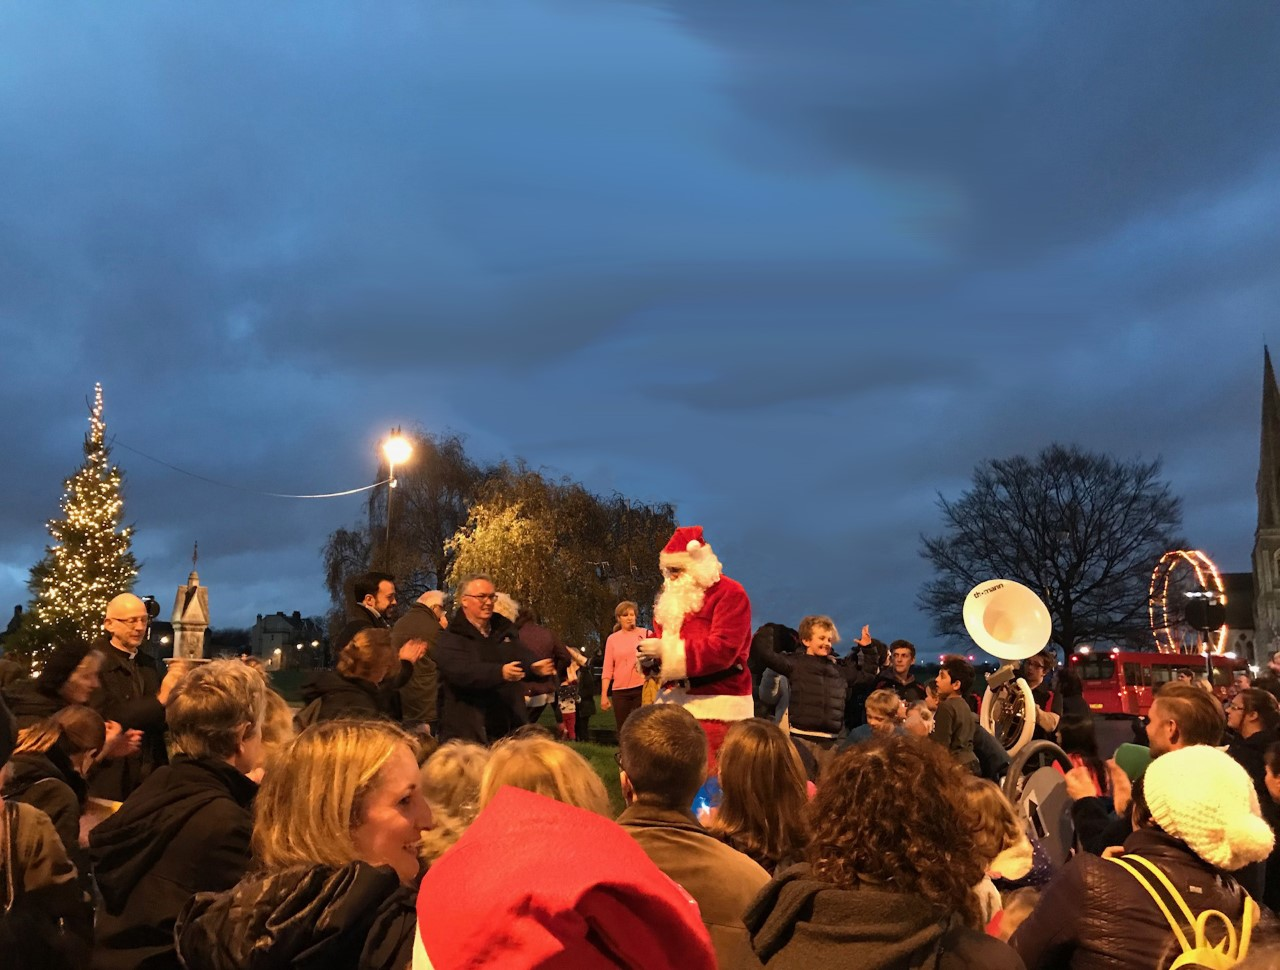 Father Christmas leads the count down for the Christmas tree lights switch on.